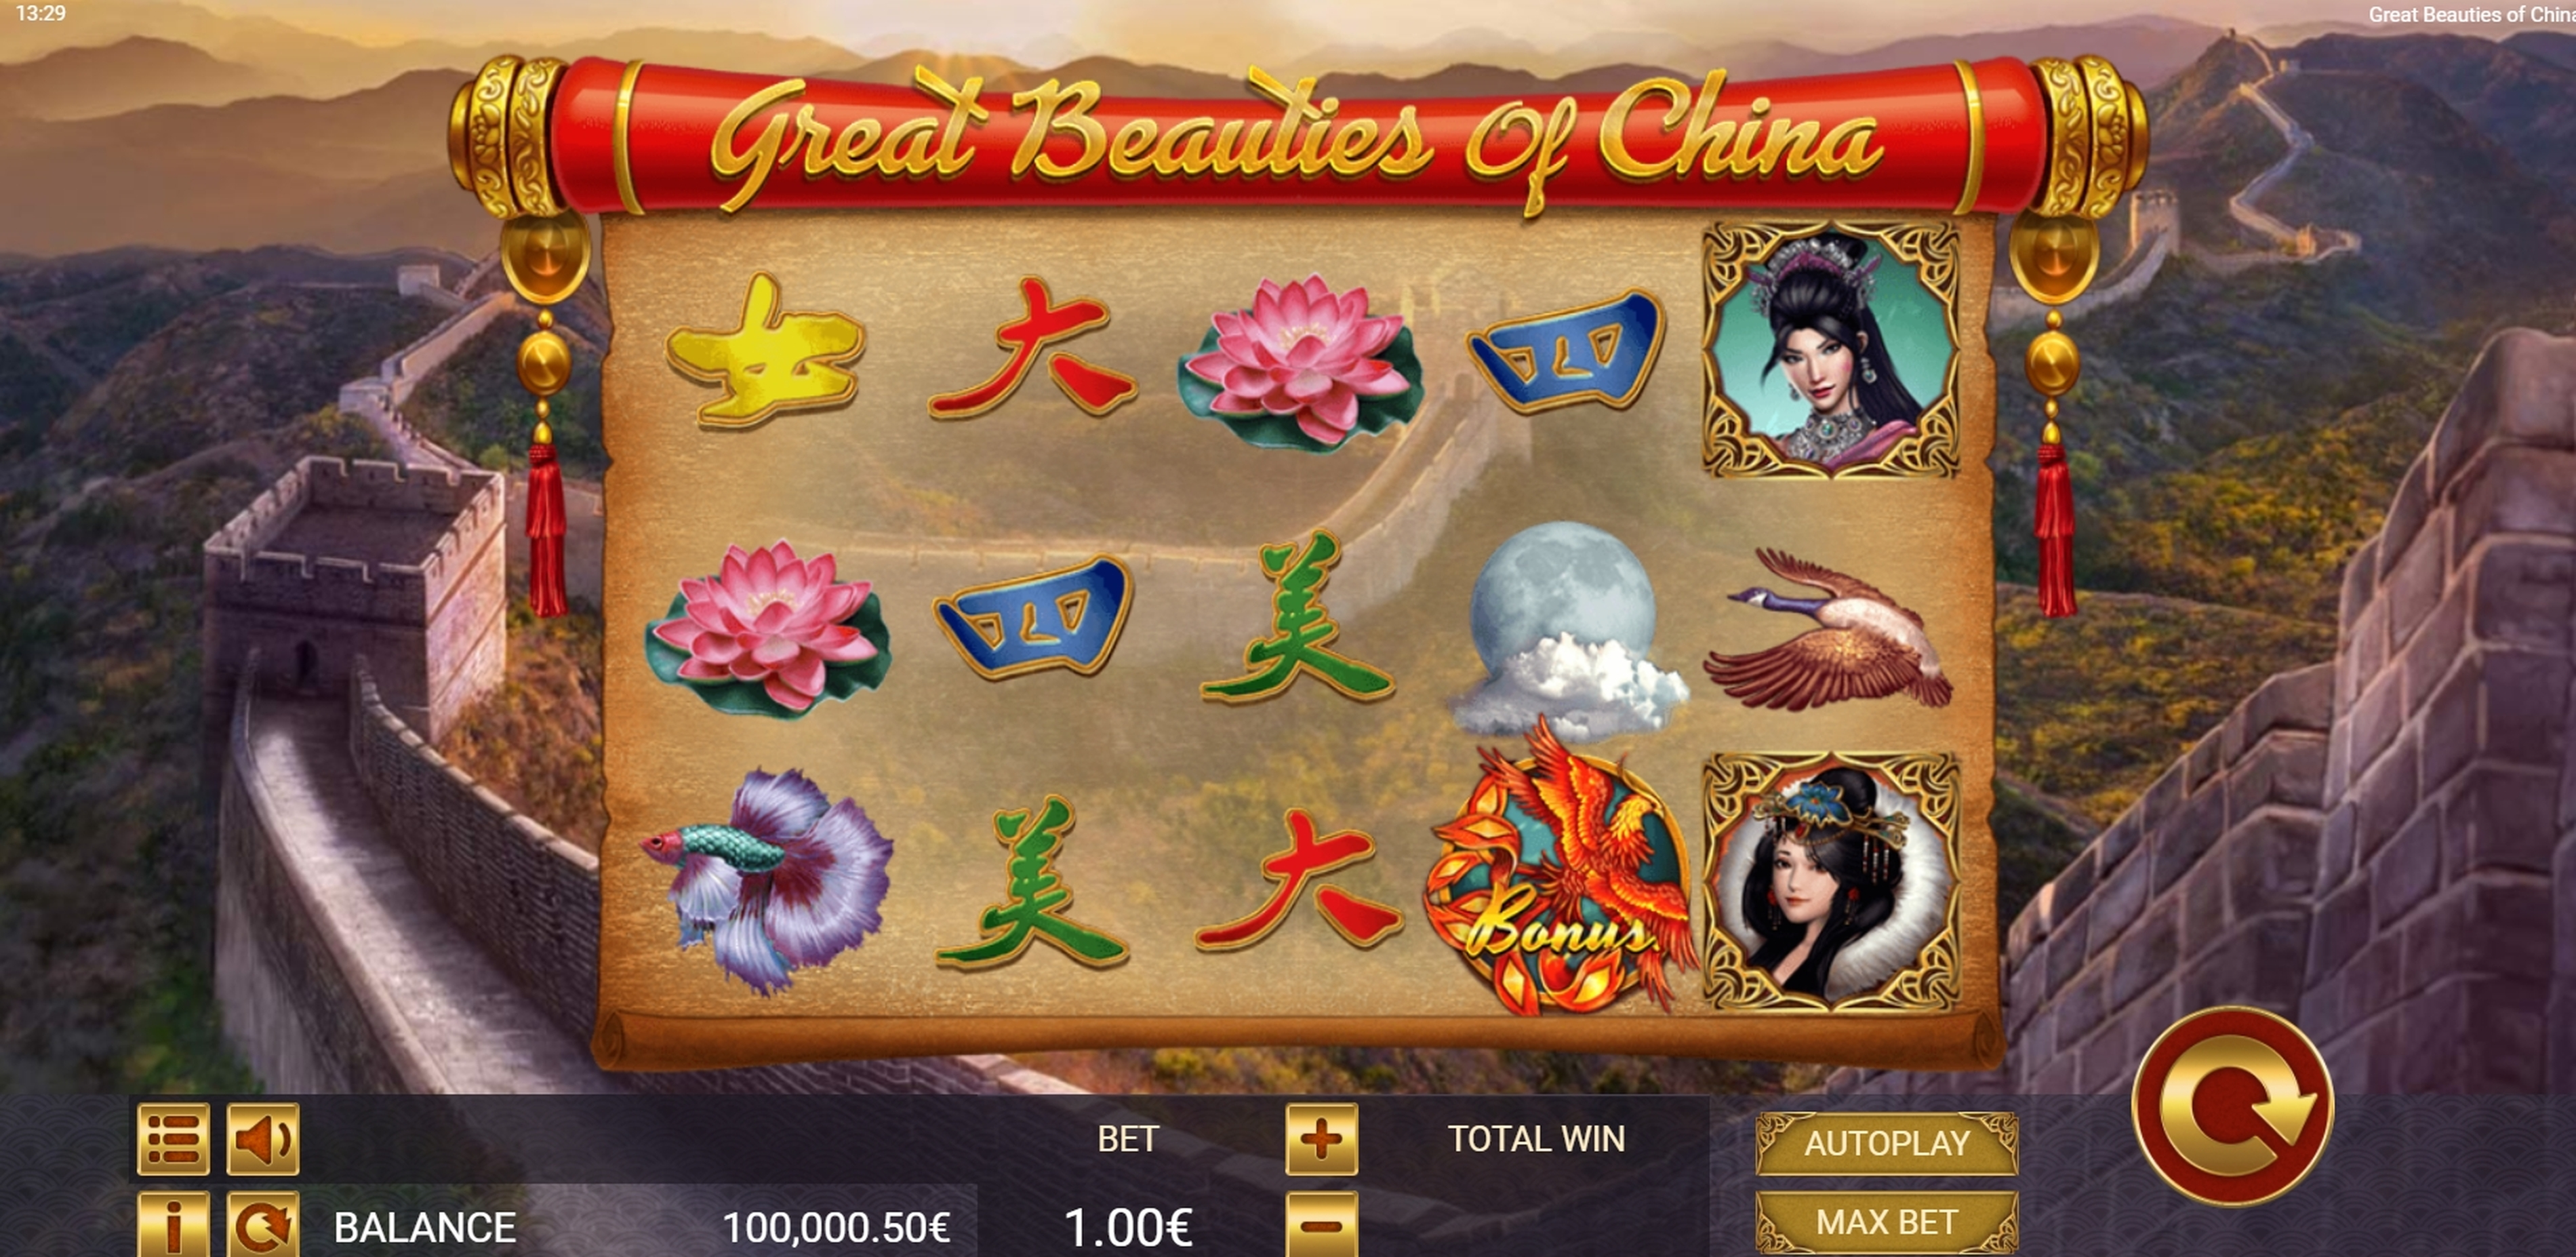 Reels in Great Beautiies Of China Slot Game by Ganapati